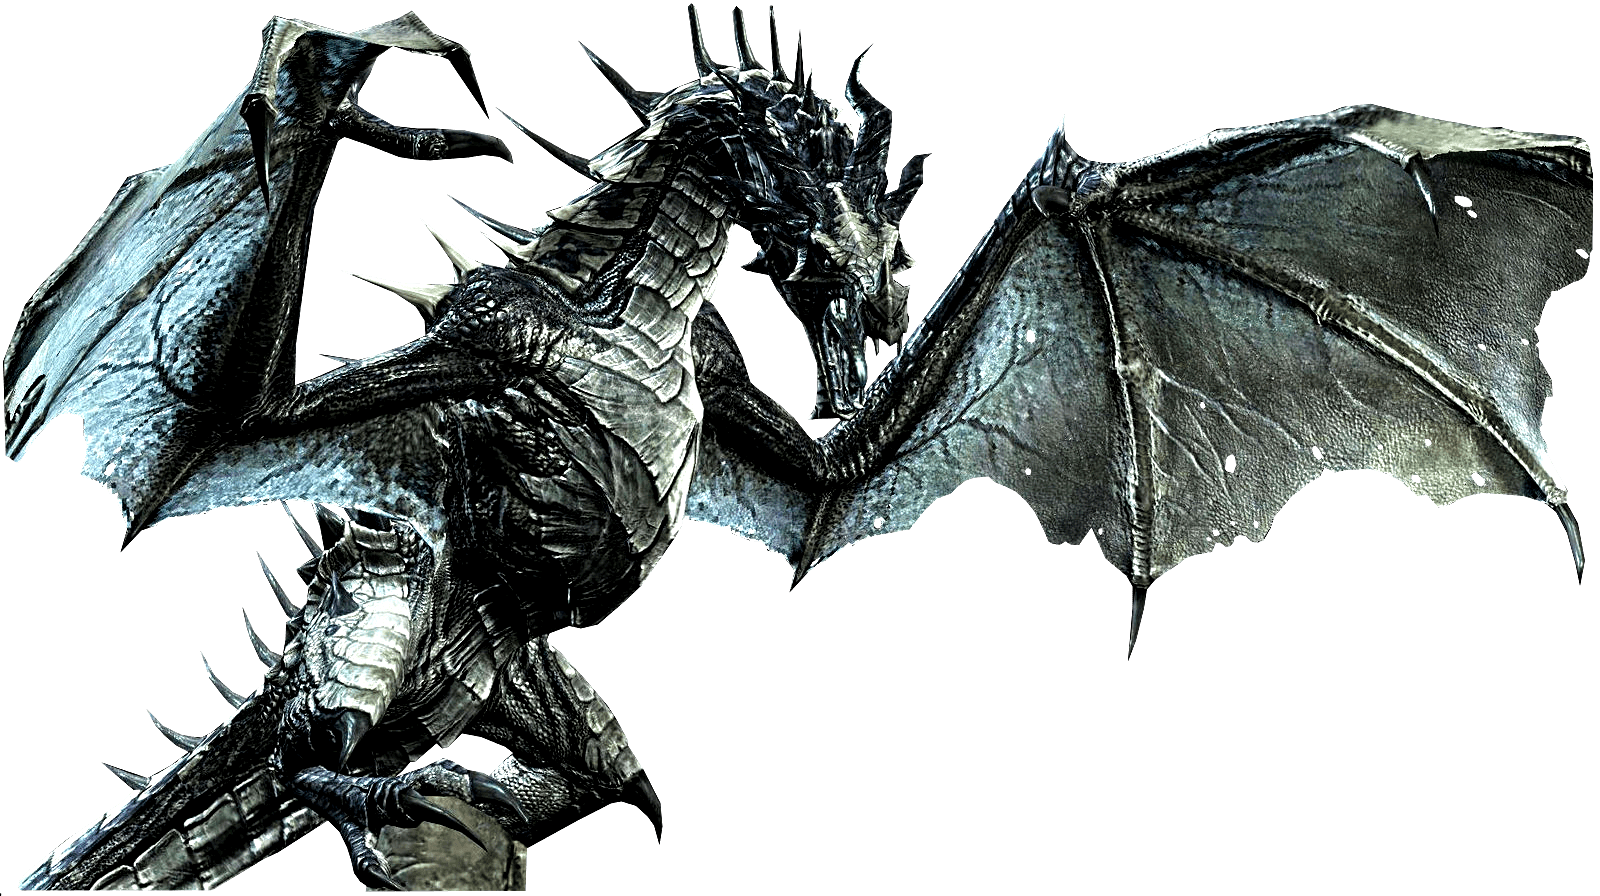 Elder Scrolls Skyrim Dragon transparent PNG.